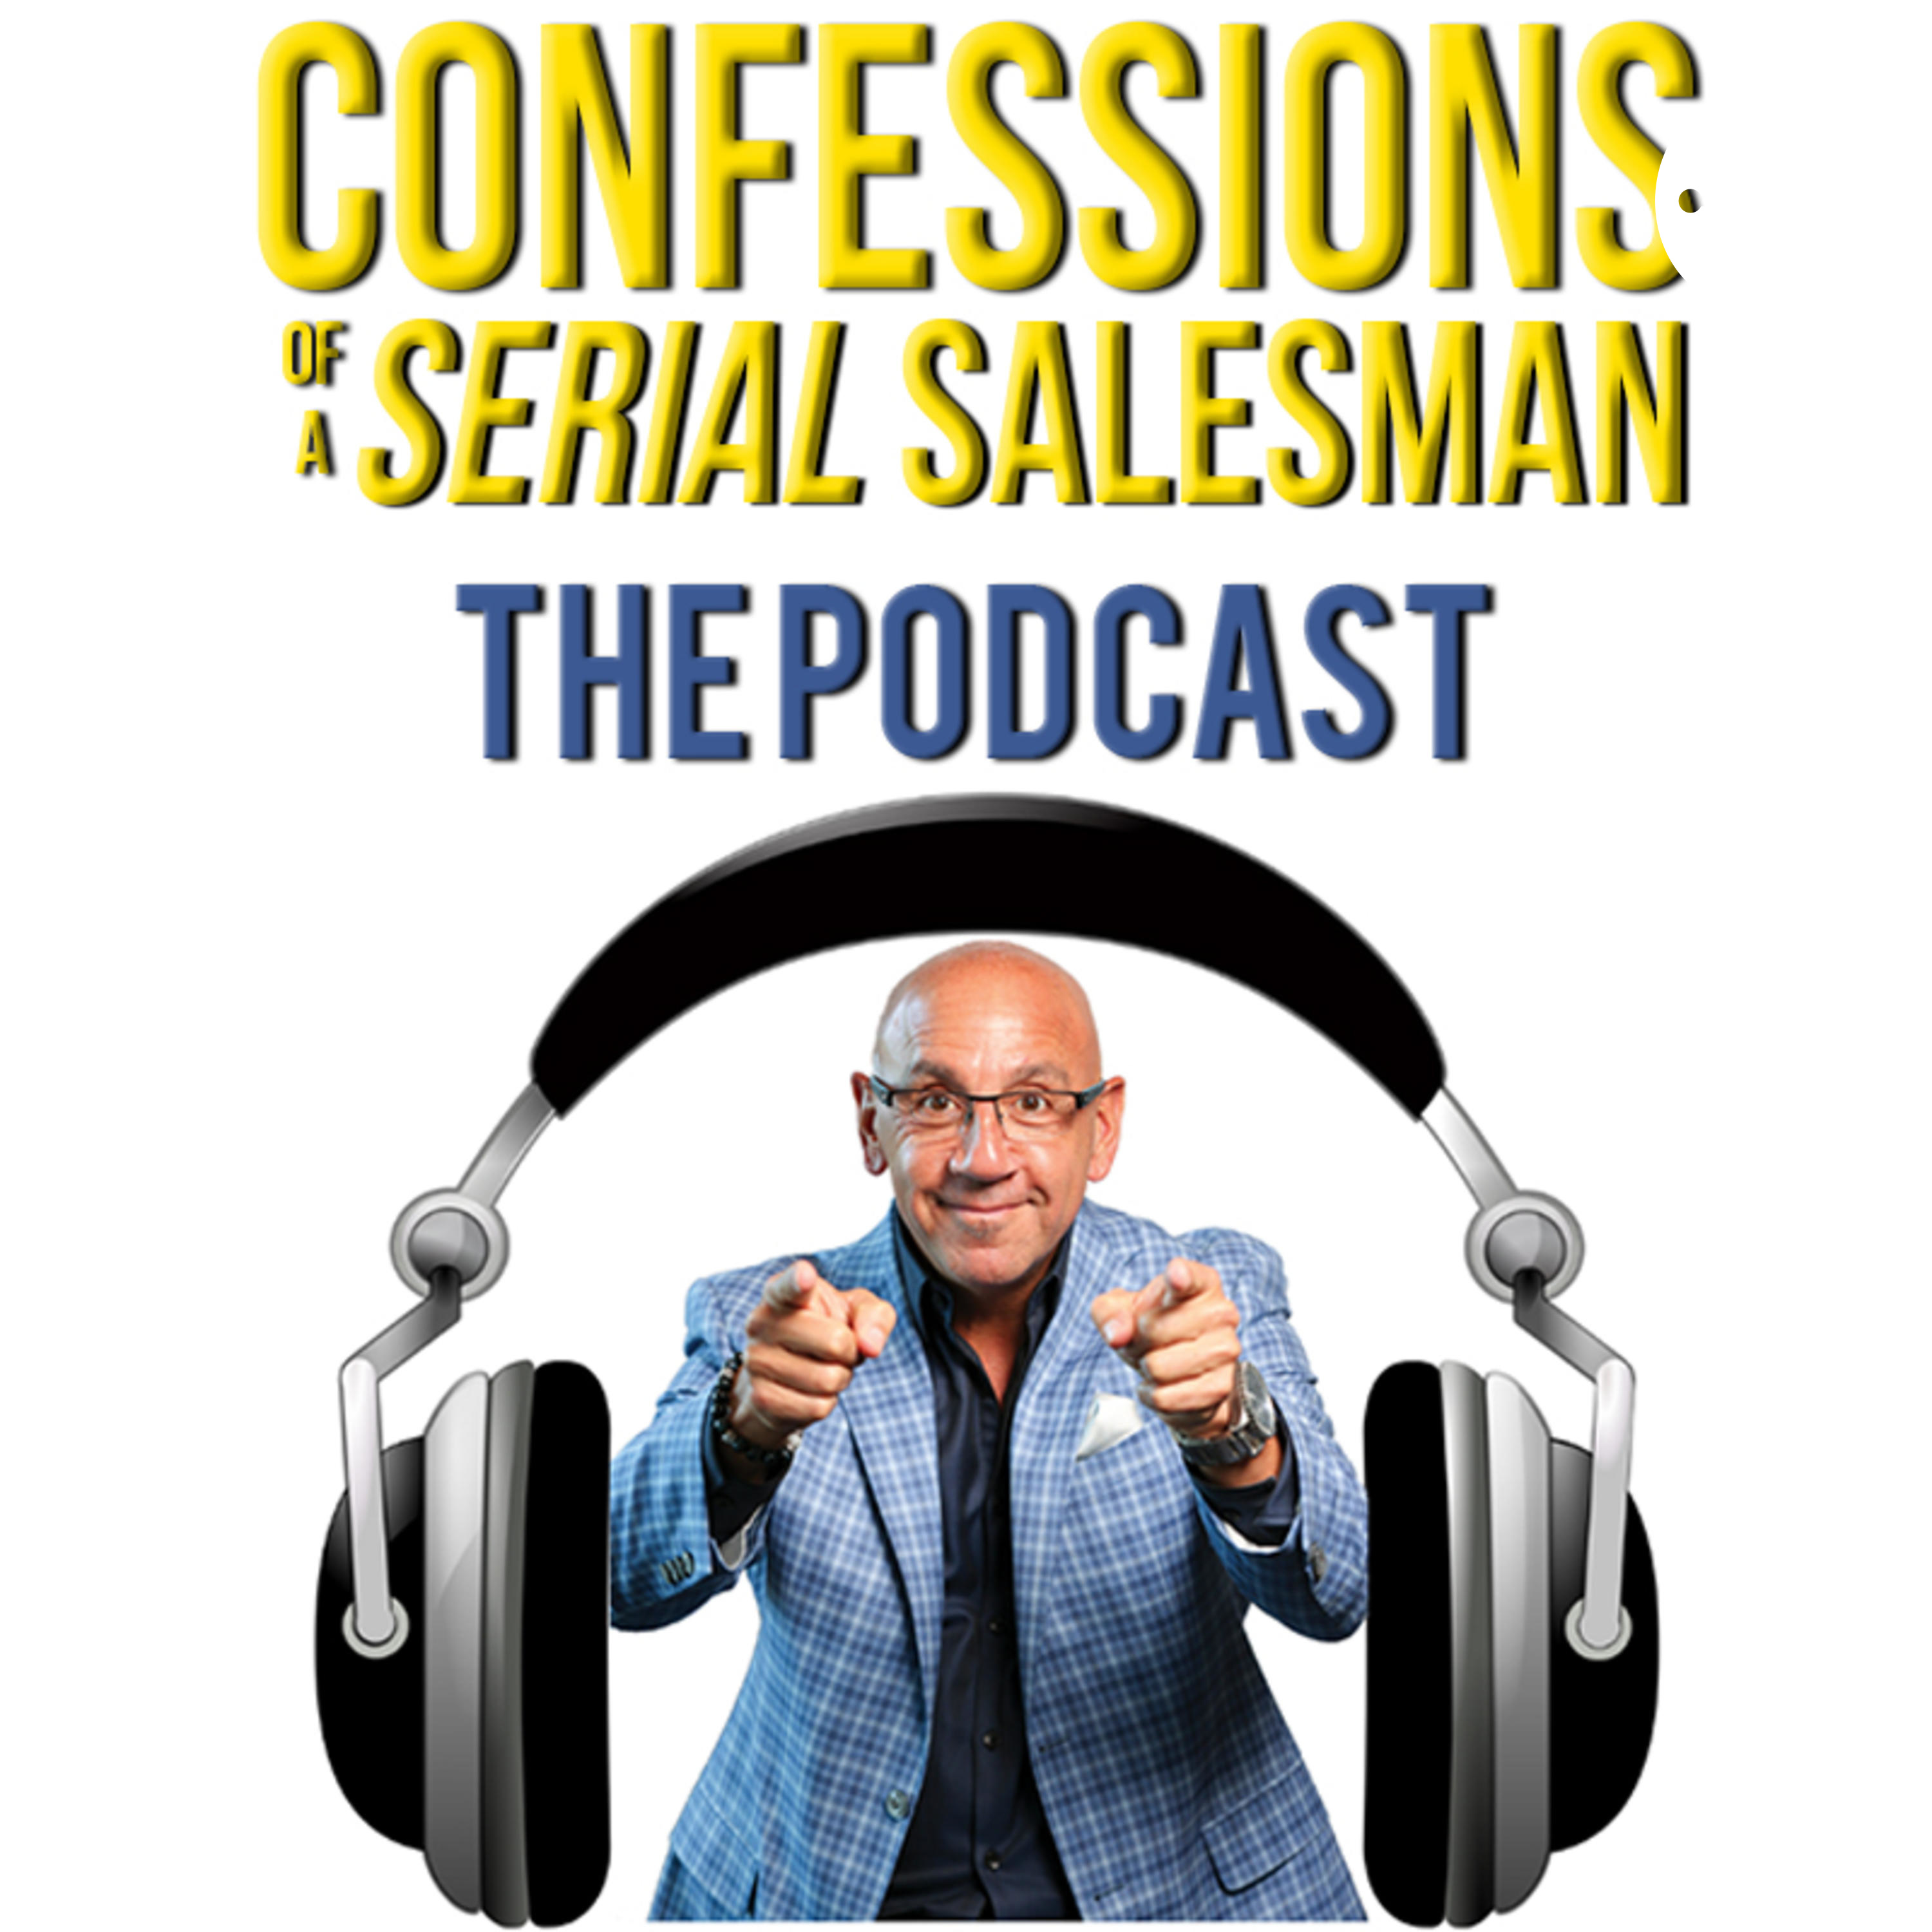 Confessions of a Serial Salesman: The Podcast